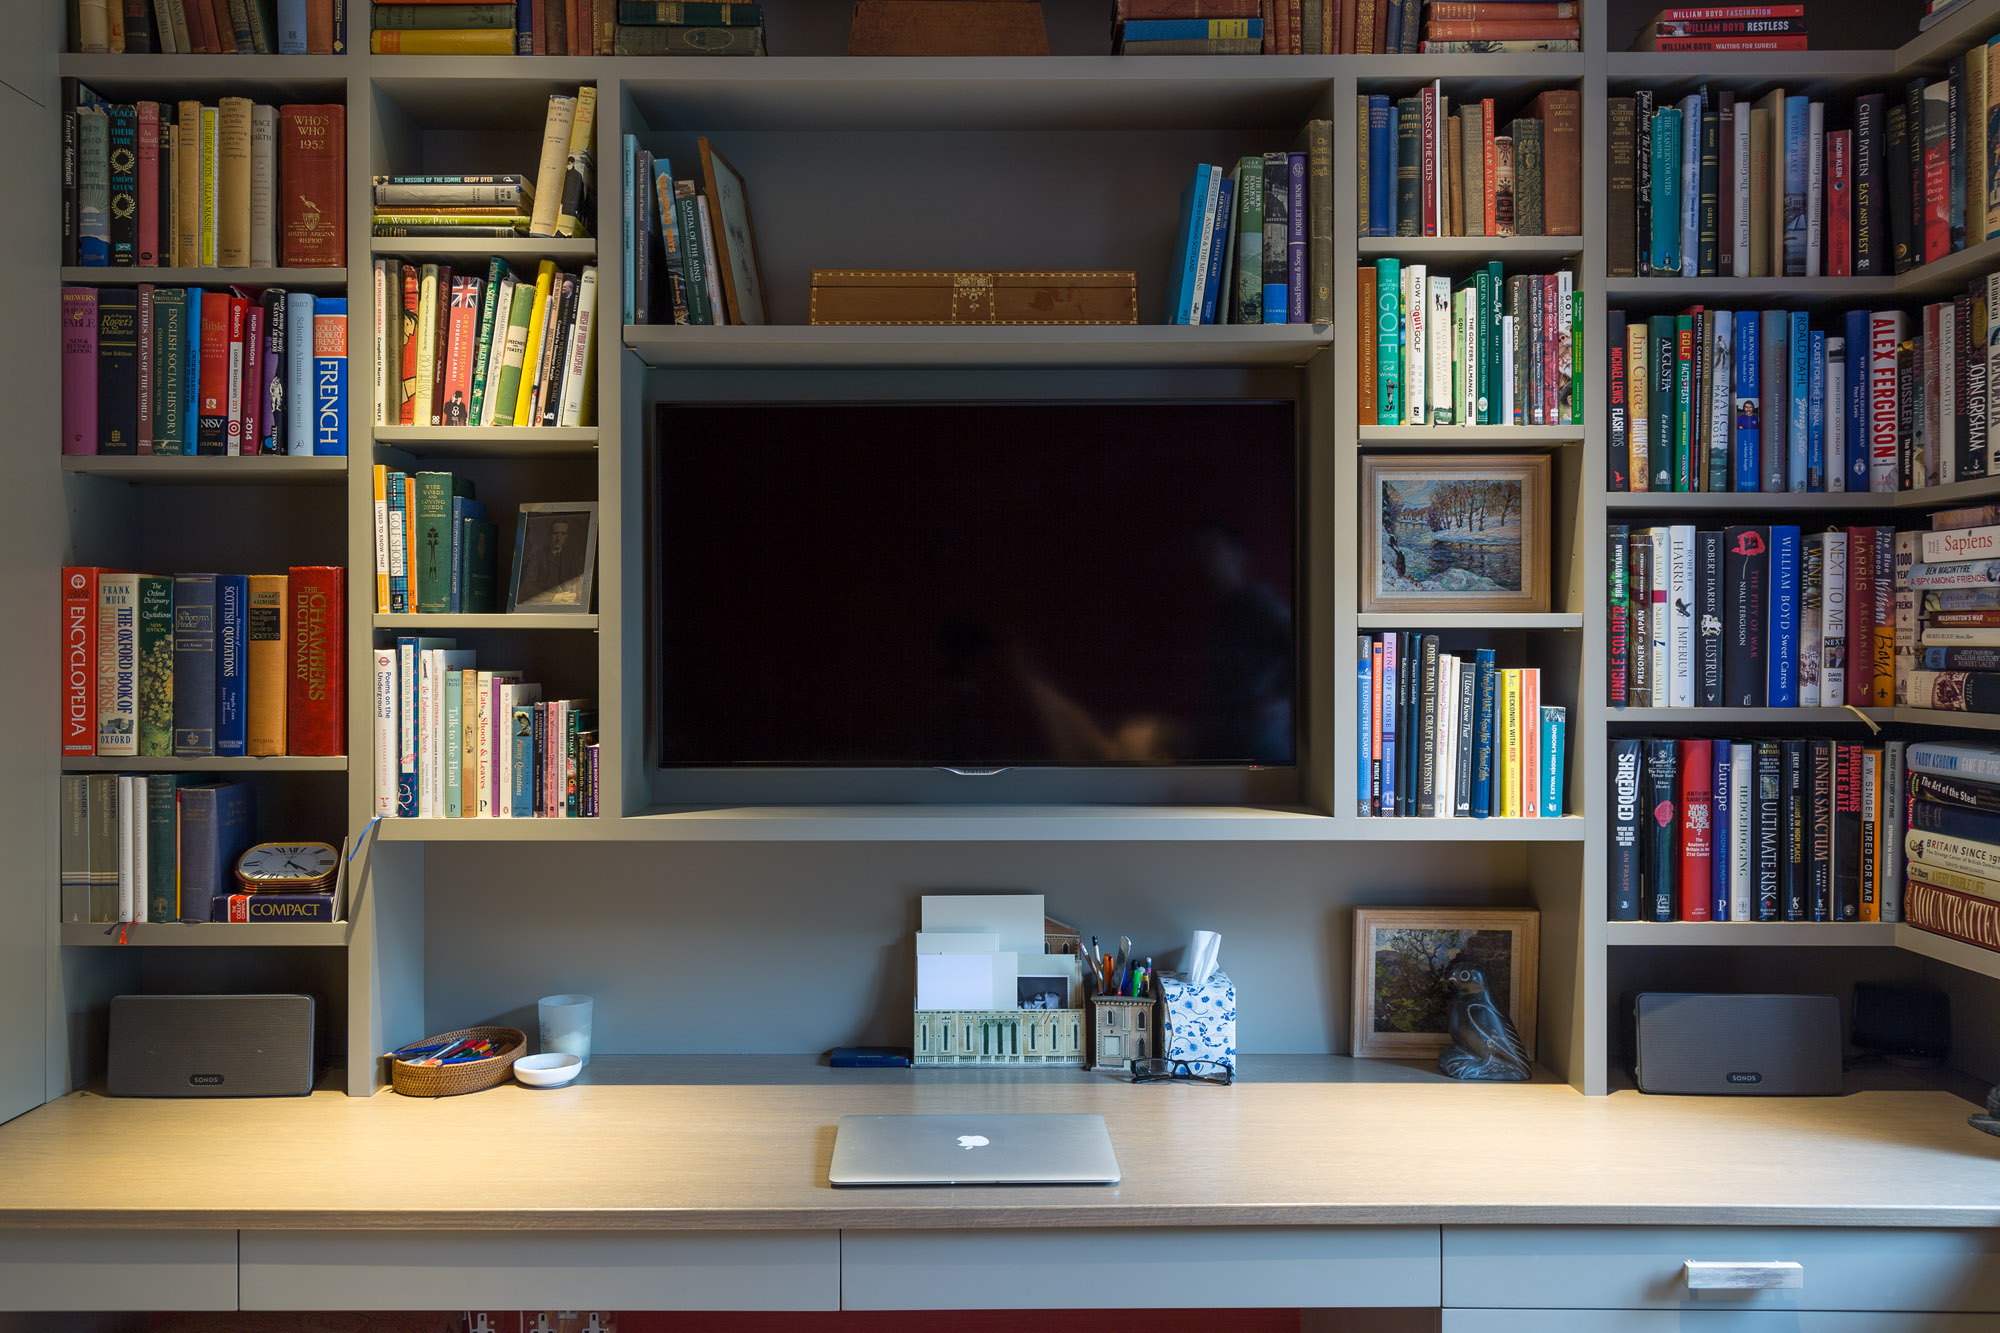 The TV here fits into the decor of the room, allowing the connected video sources from the main equipment rack to be viewed.  Discrete  Sonos  speakers give full stereo sound when working at the desk, or relaxing in the comfy sofa.